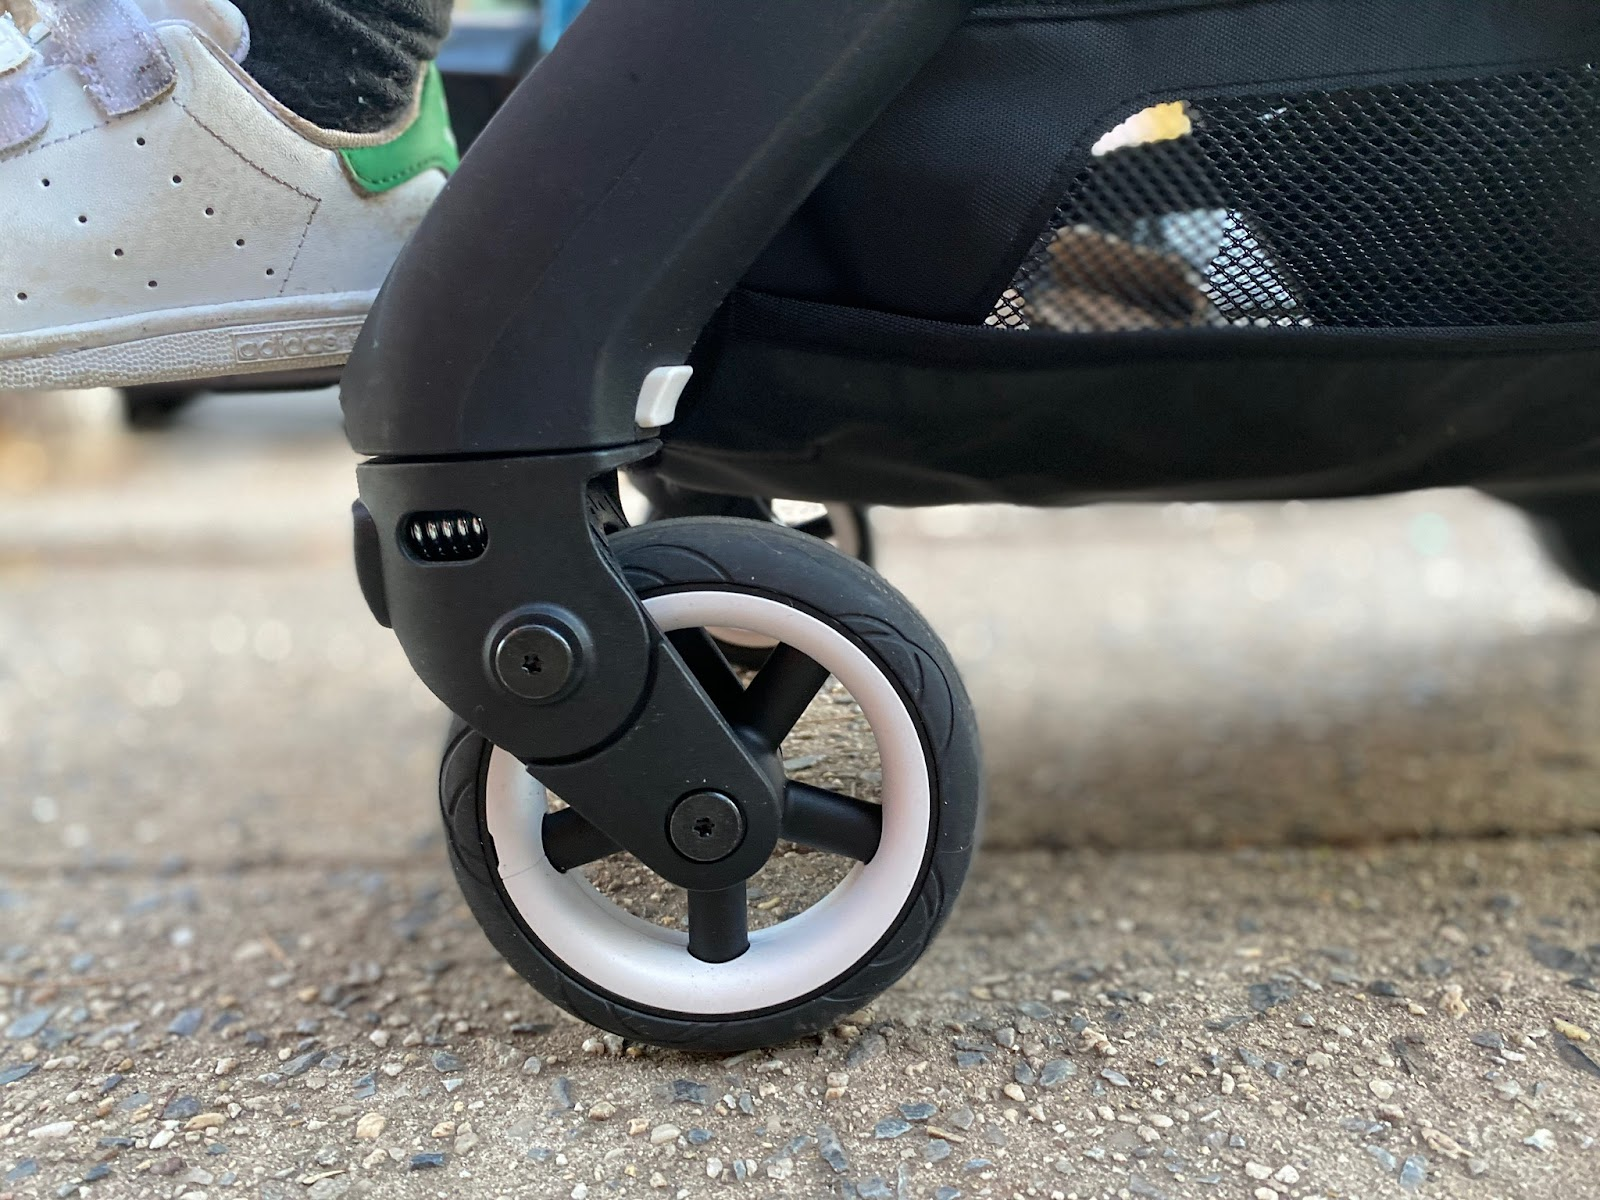 bugaboo ant stroller review: wheels